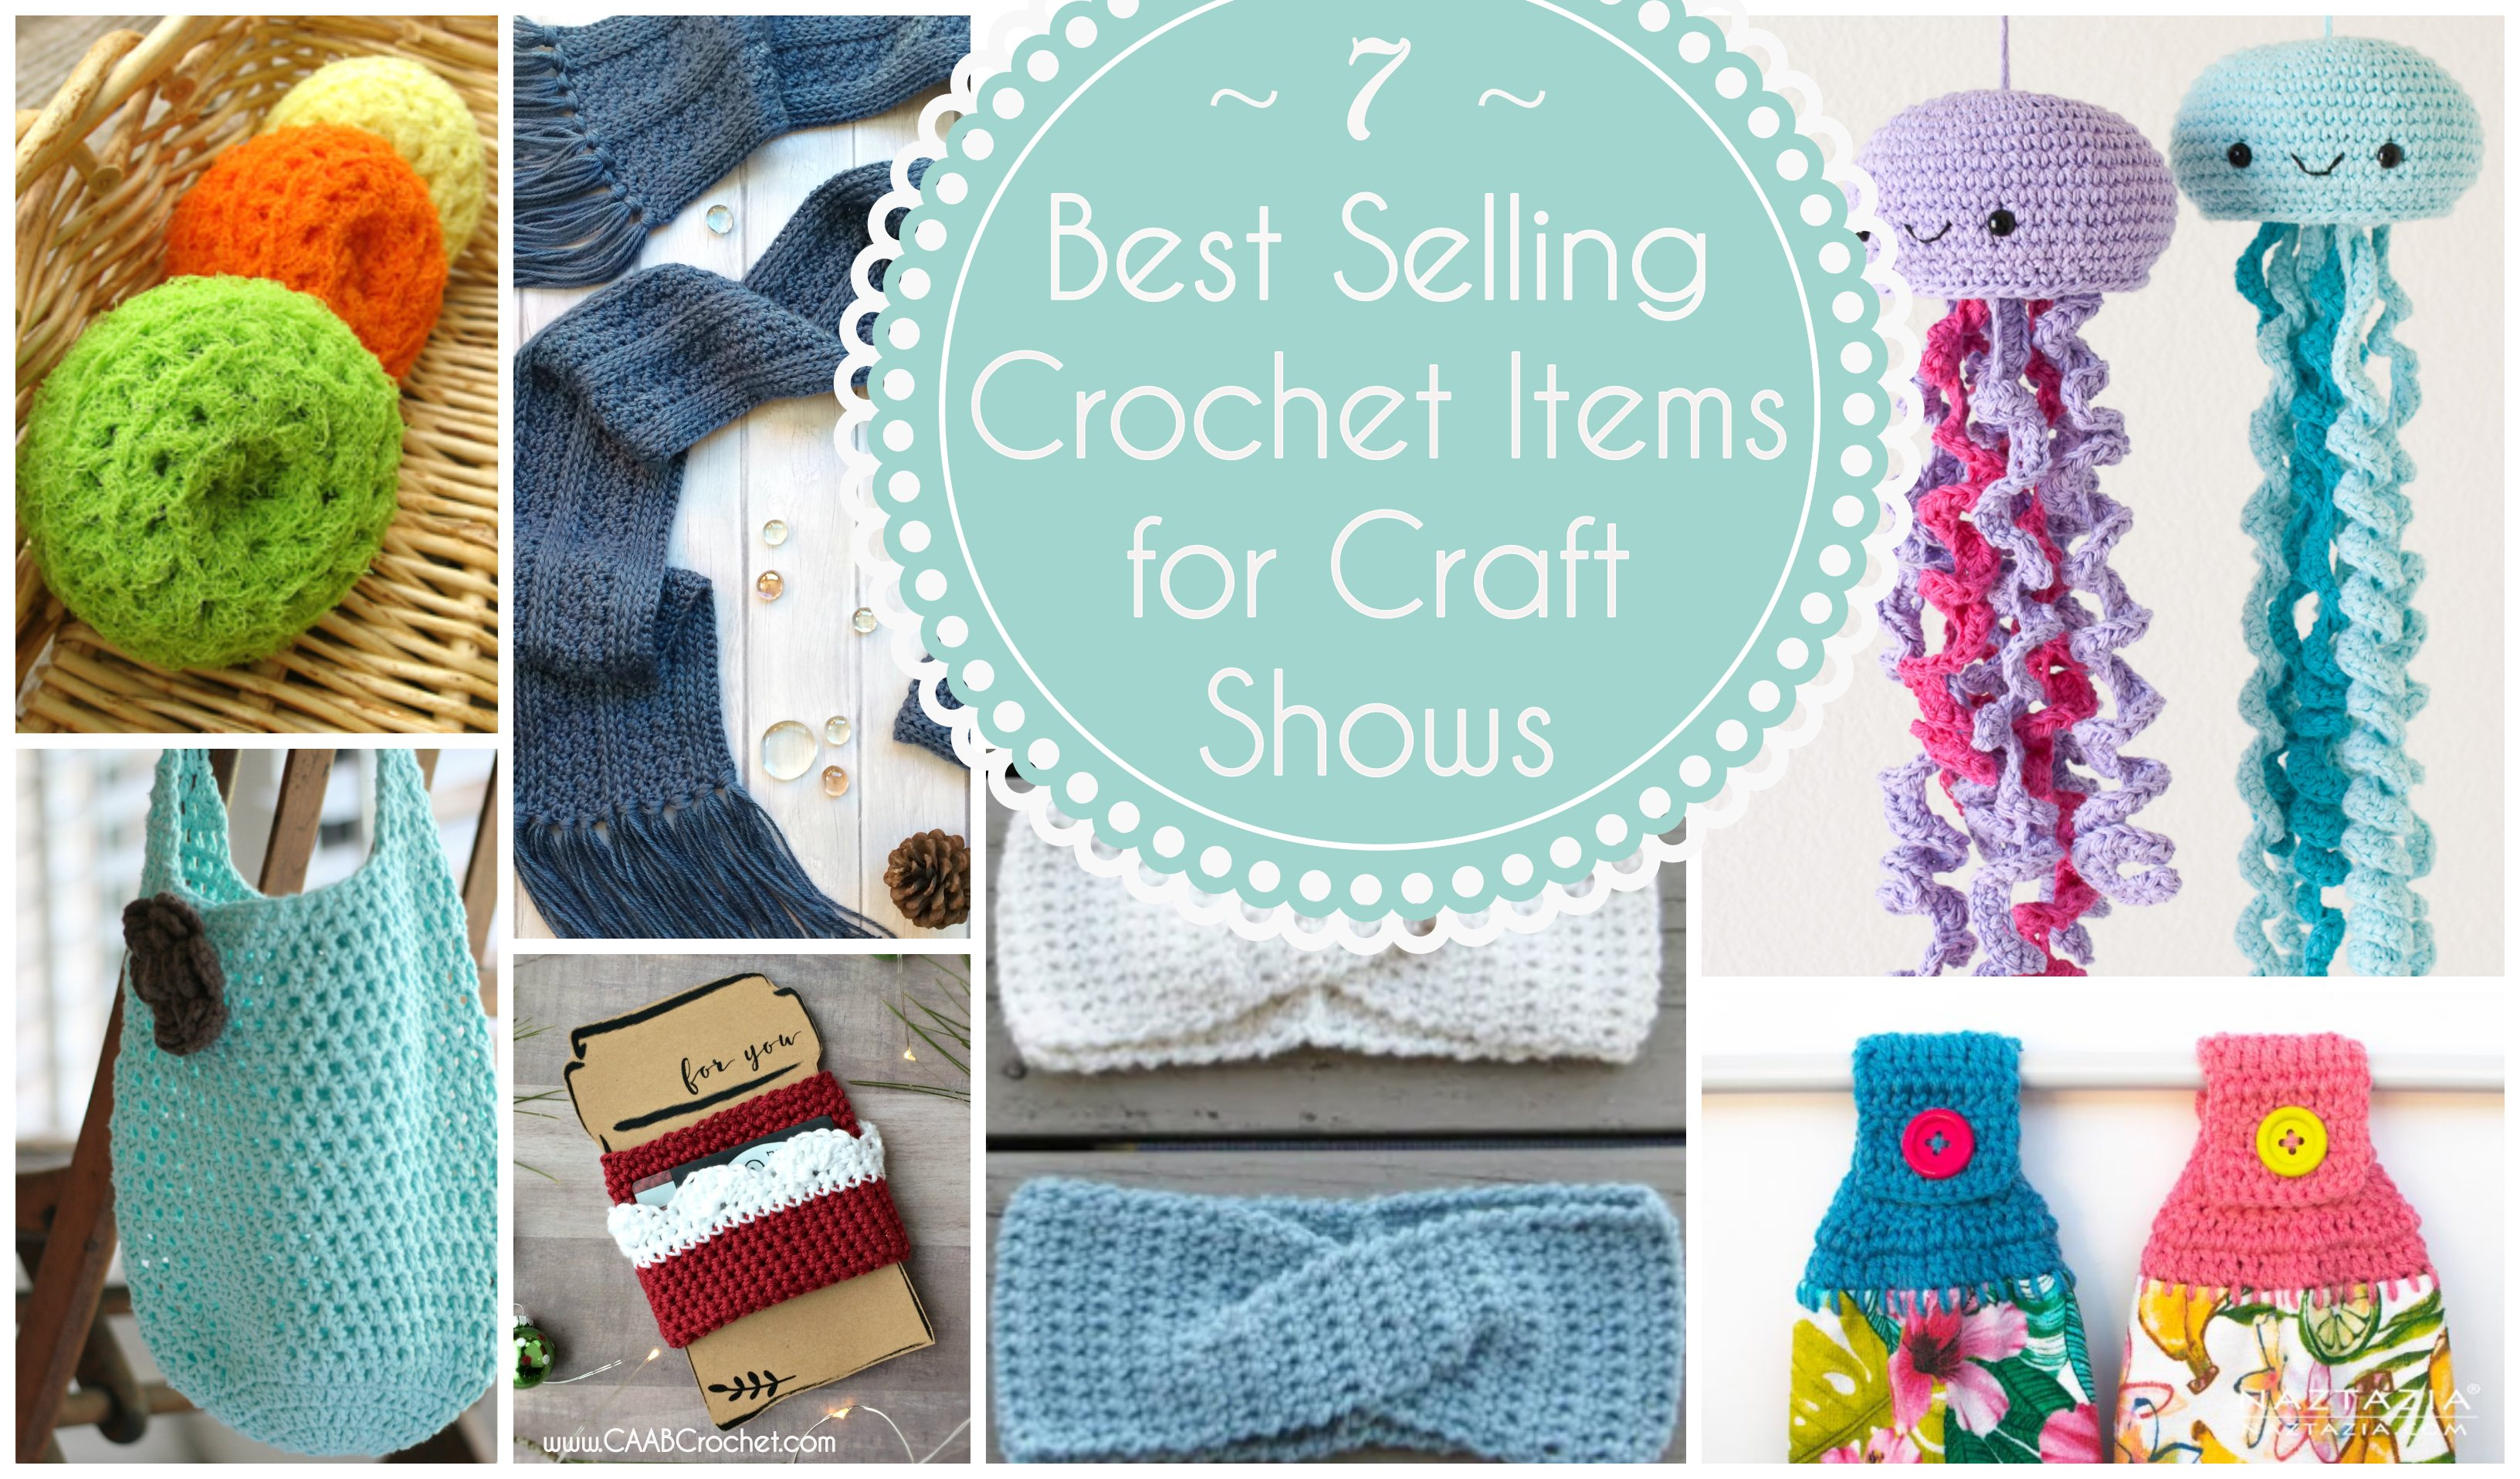 Best Selling Crochet Items For Craft Shows Cute As A Button